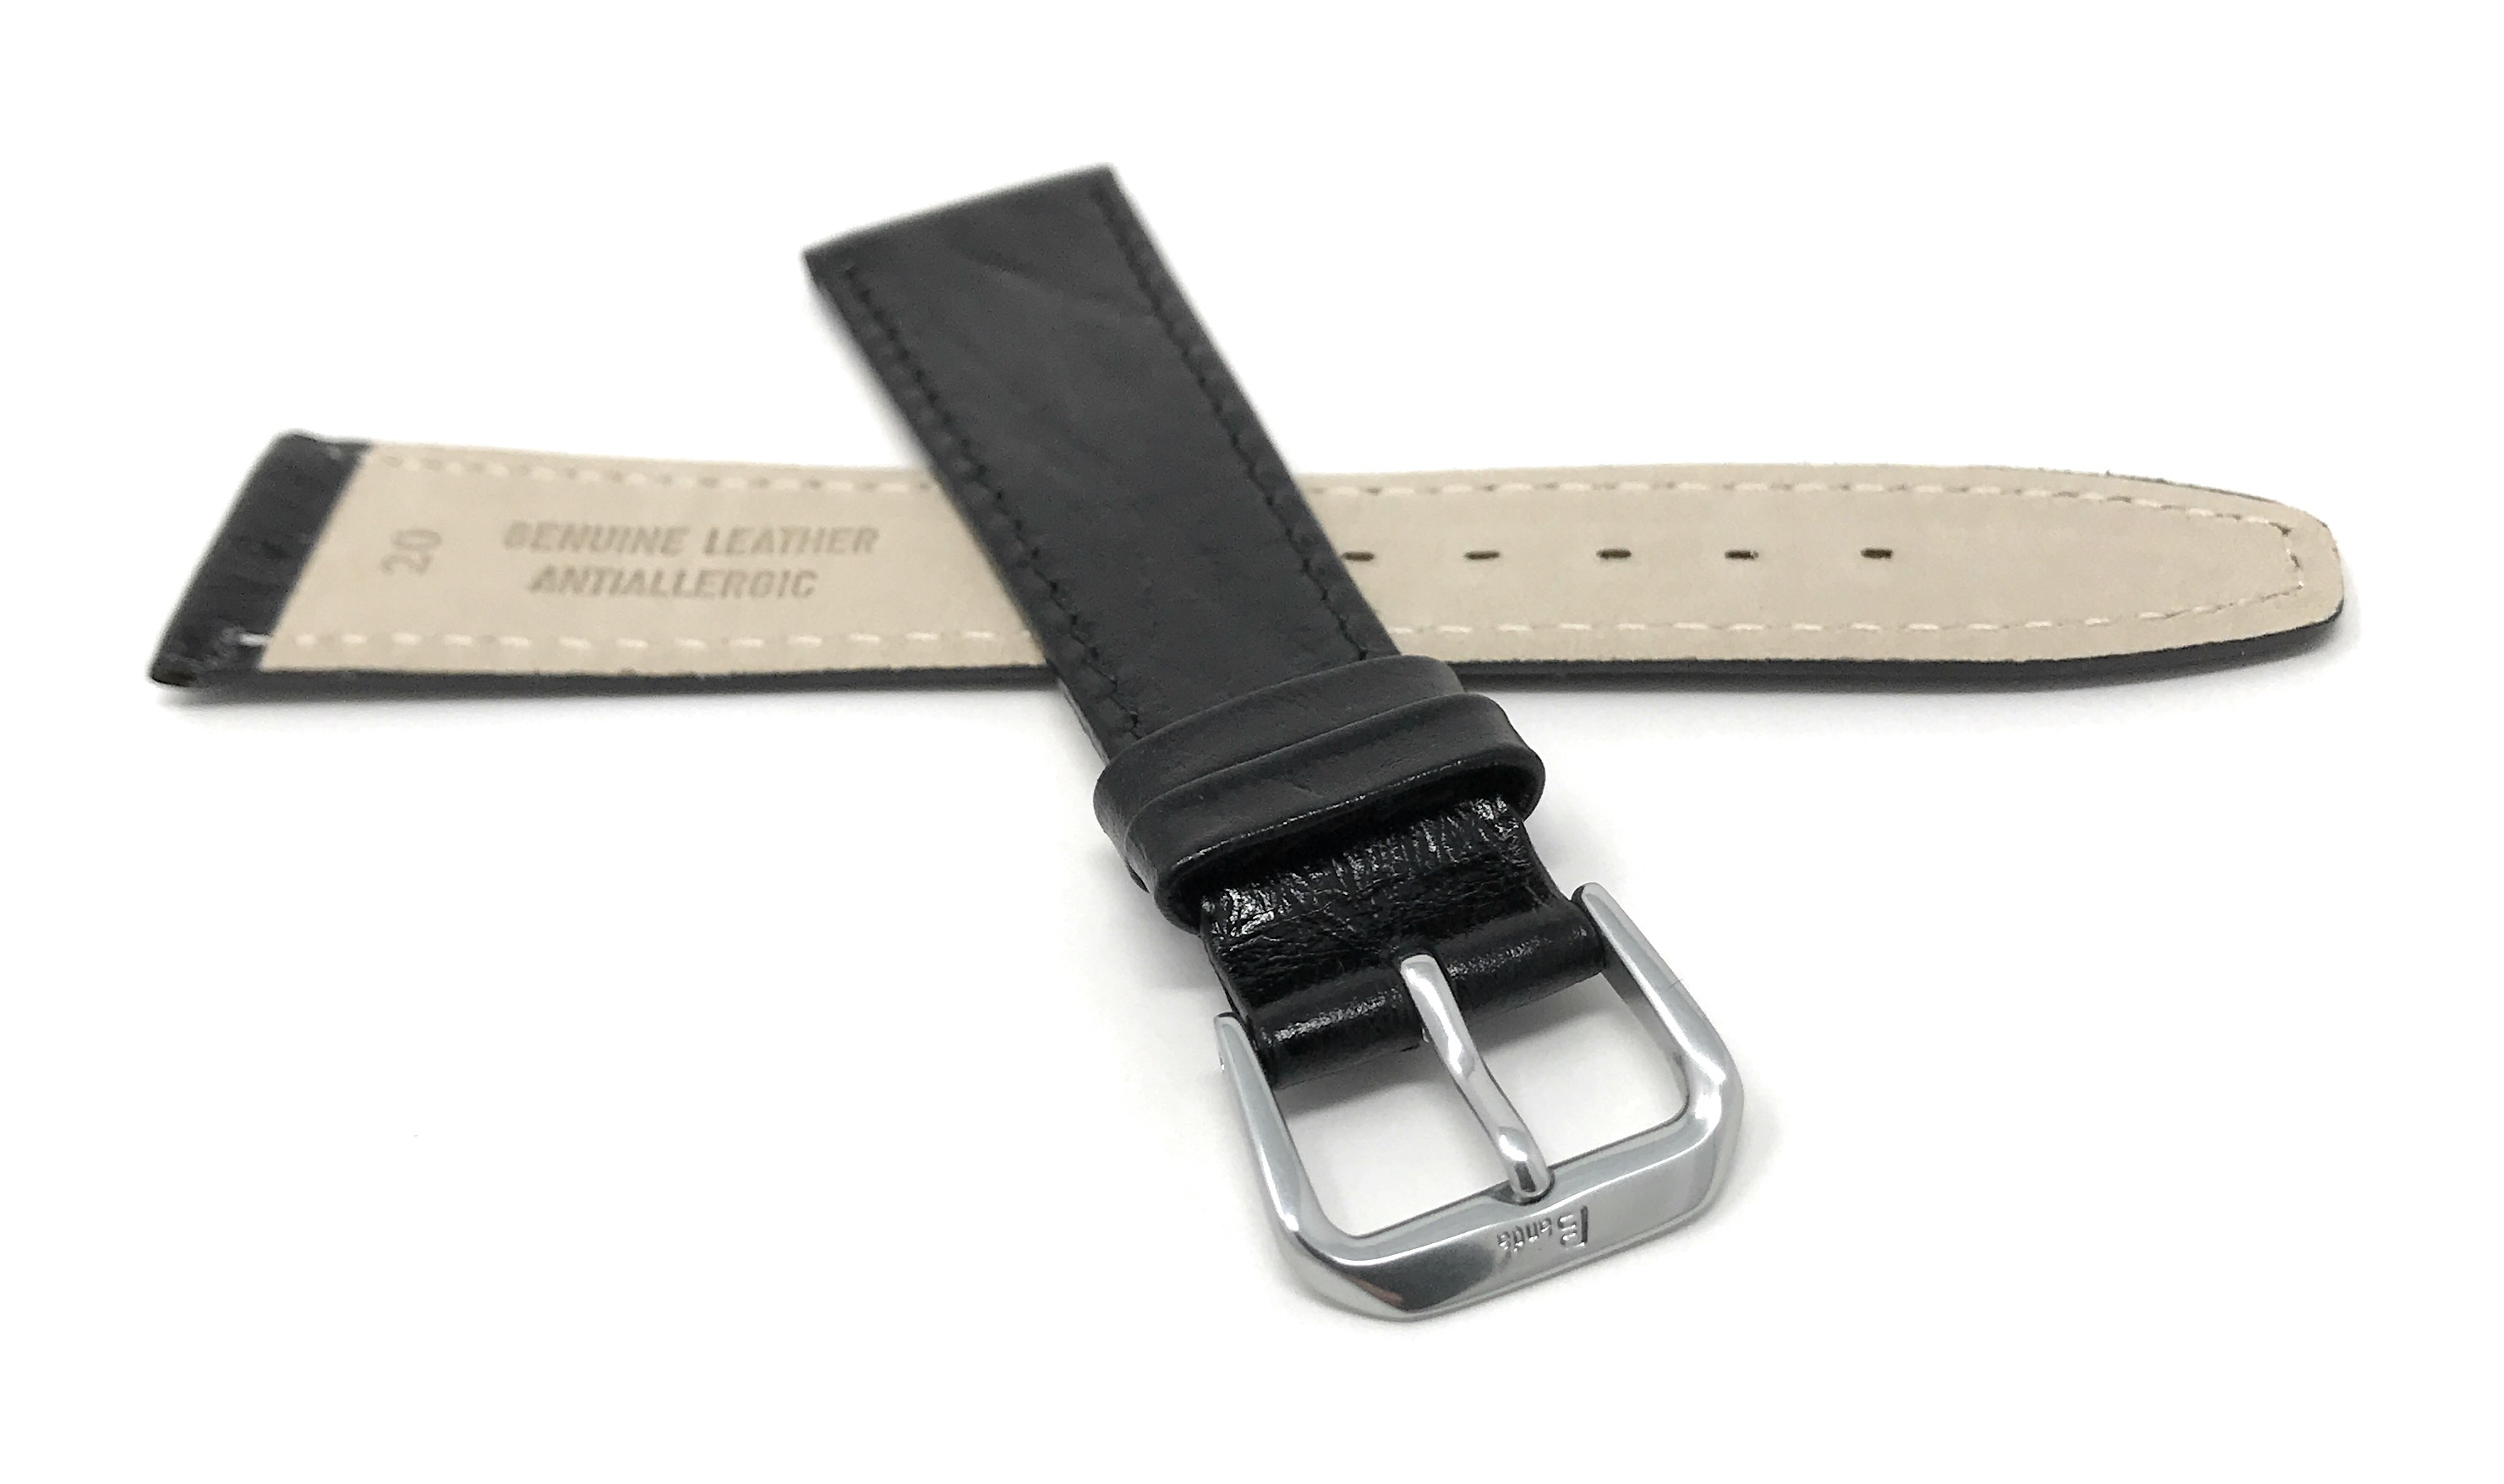 Bandini-Watch-Band-Leather-Strap-Semi-Glossy-10mm-20mm-Extra-Long-Also thumbnail 8